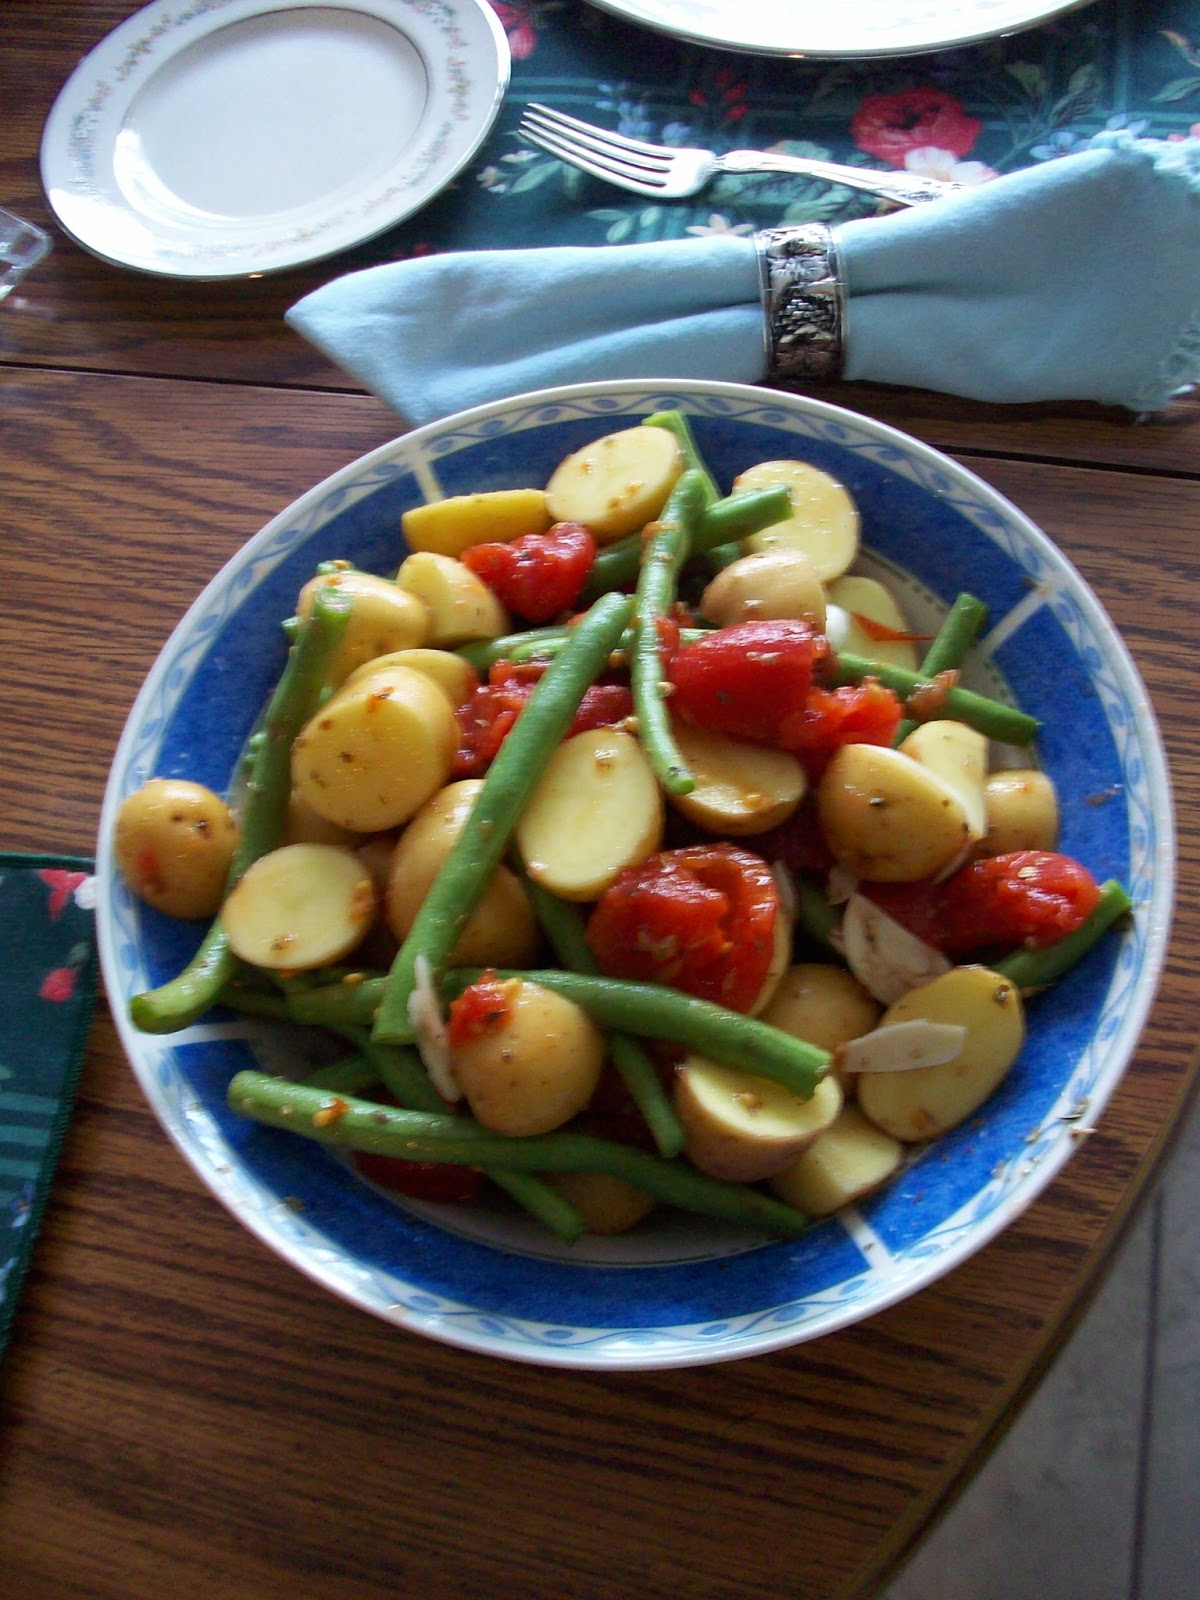 Perpetual Food Tour: Greek-Style Vegetable Casserole